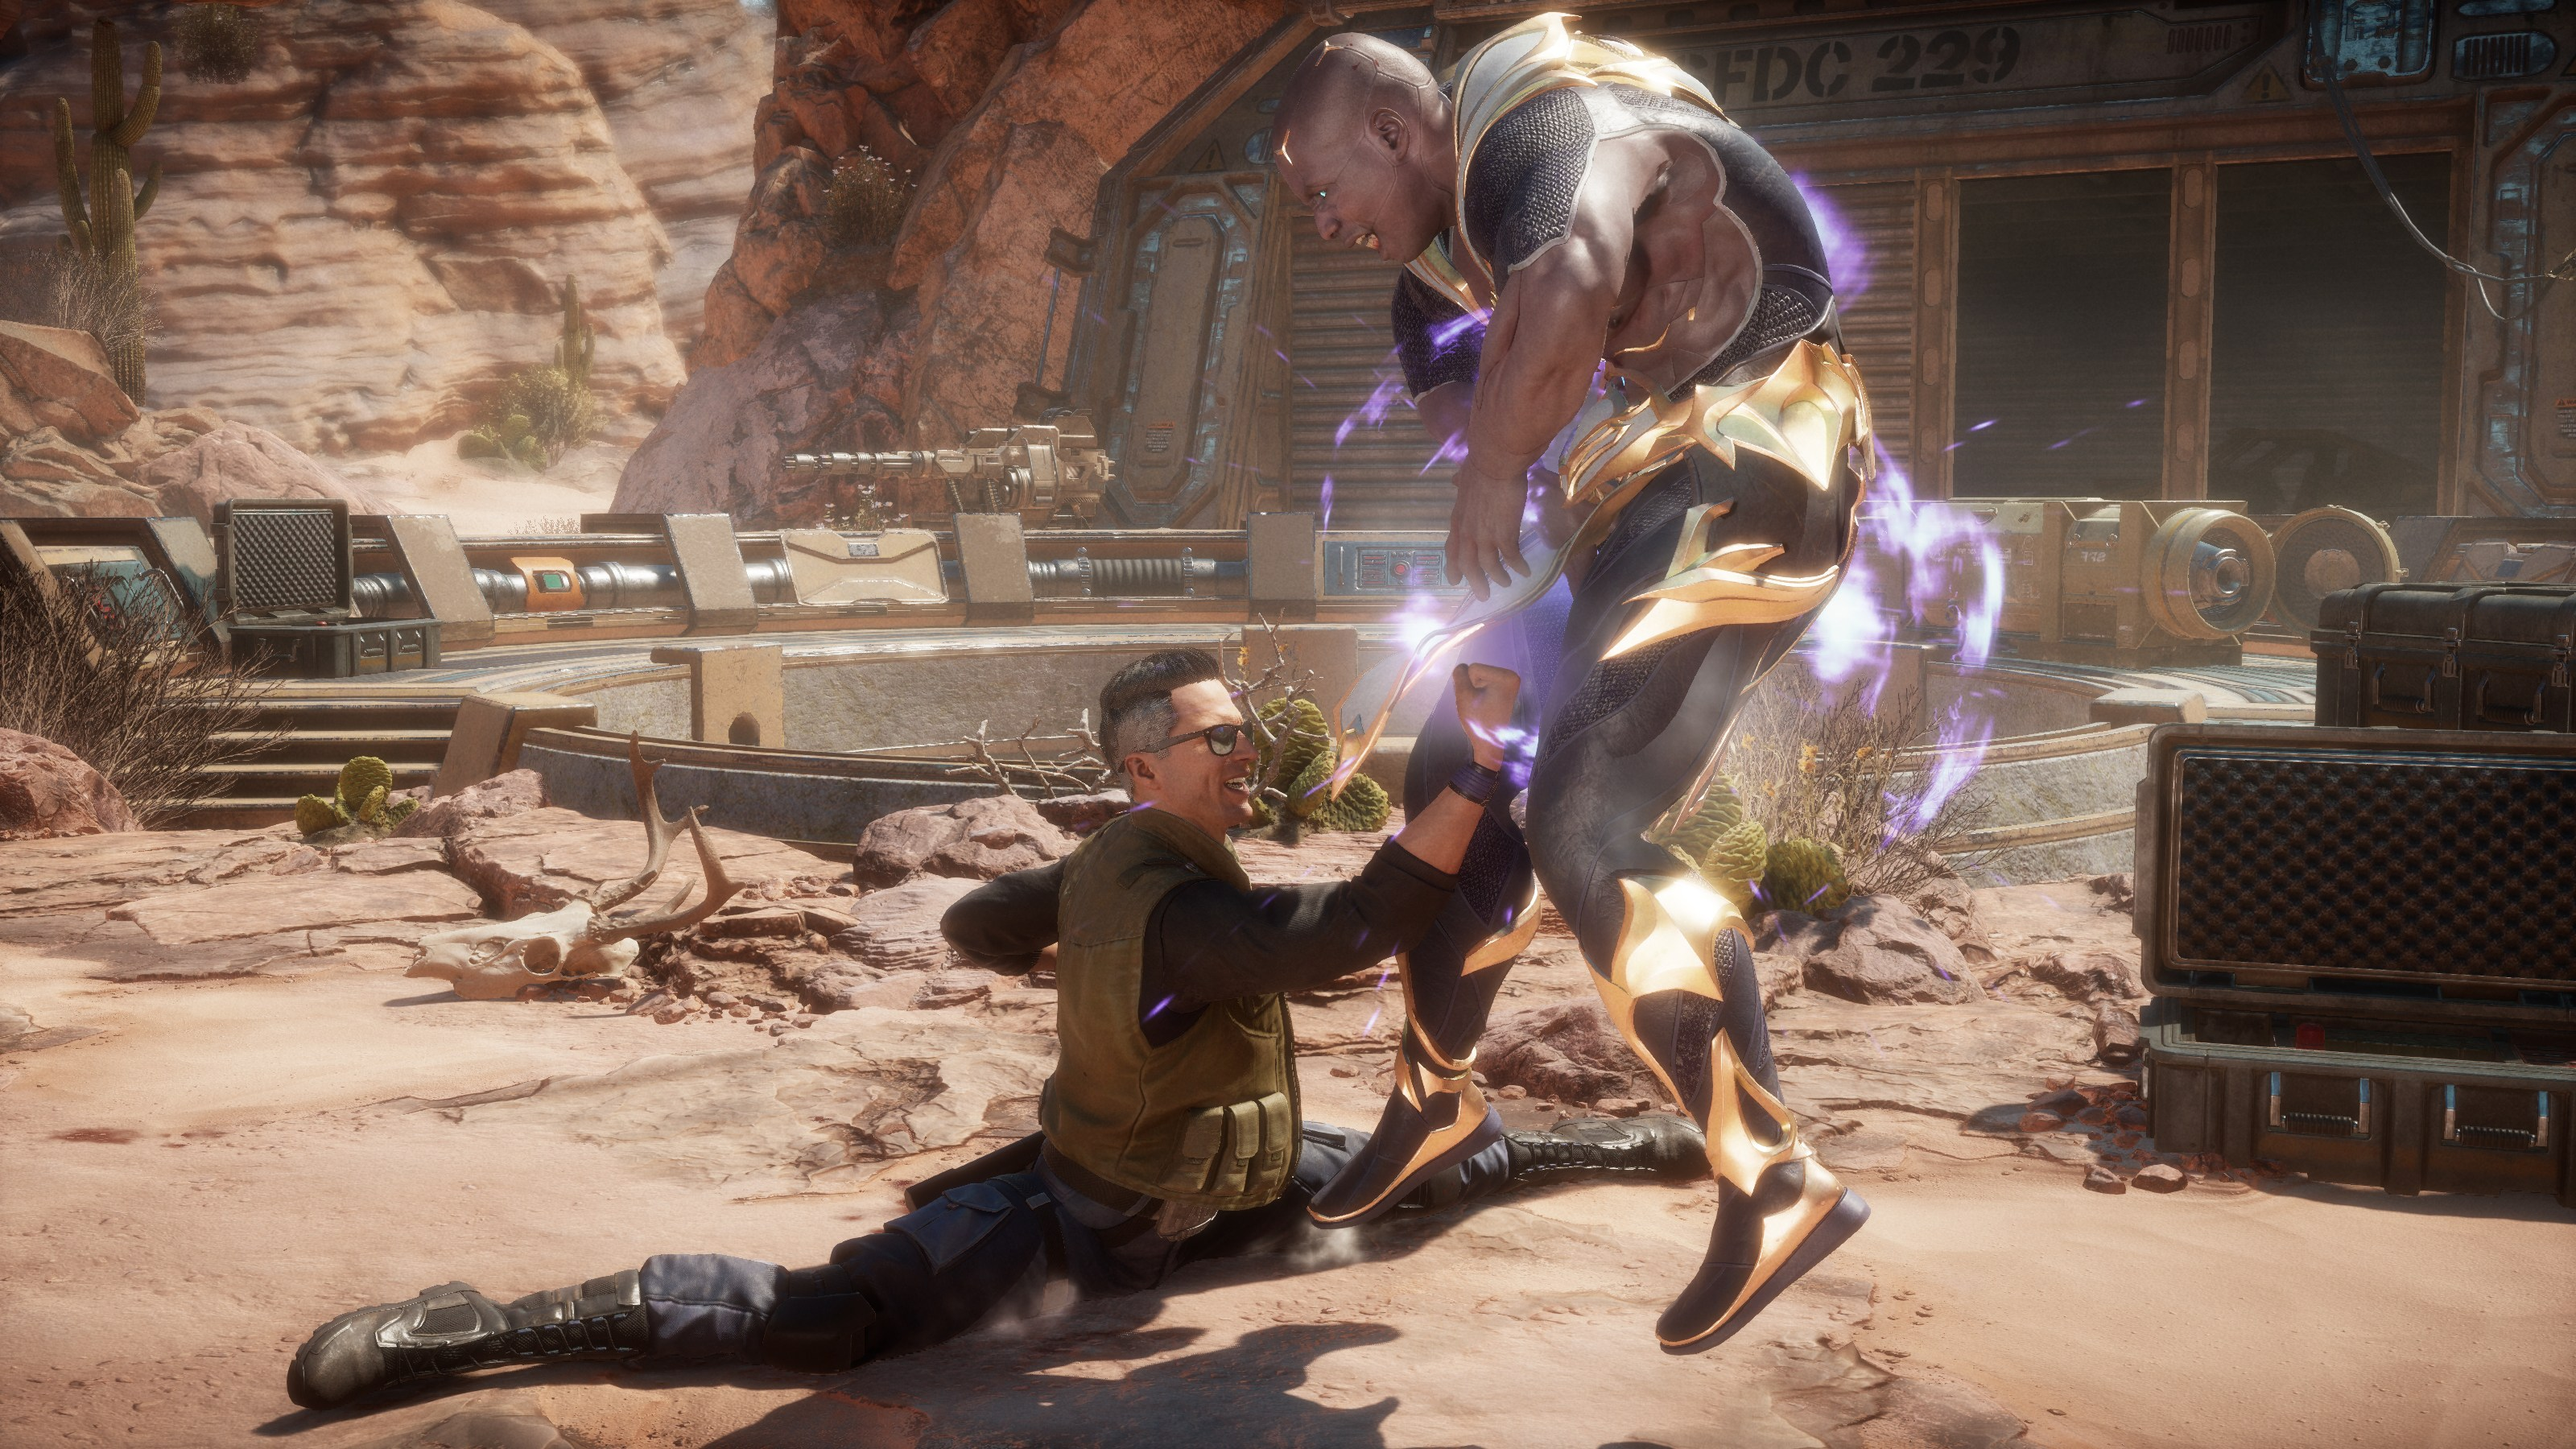 Mortal Kombat 11 Patch Is Out On PC and Nintendo Switch, New